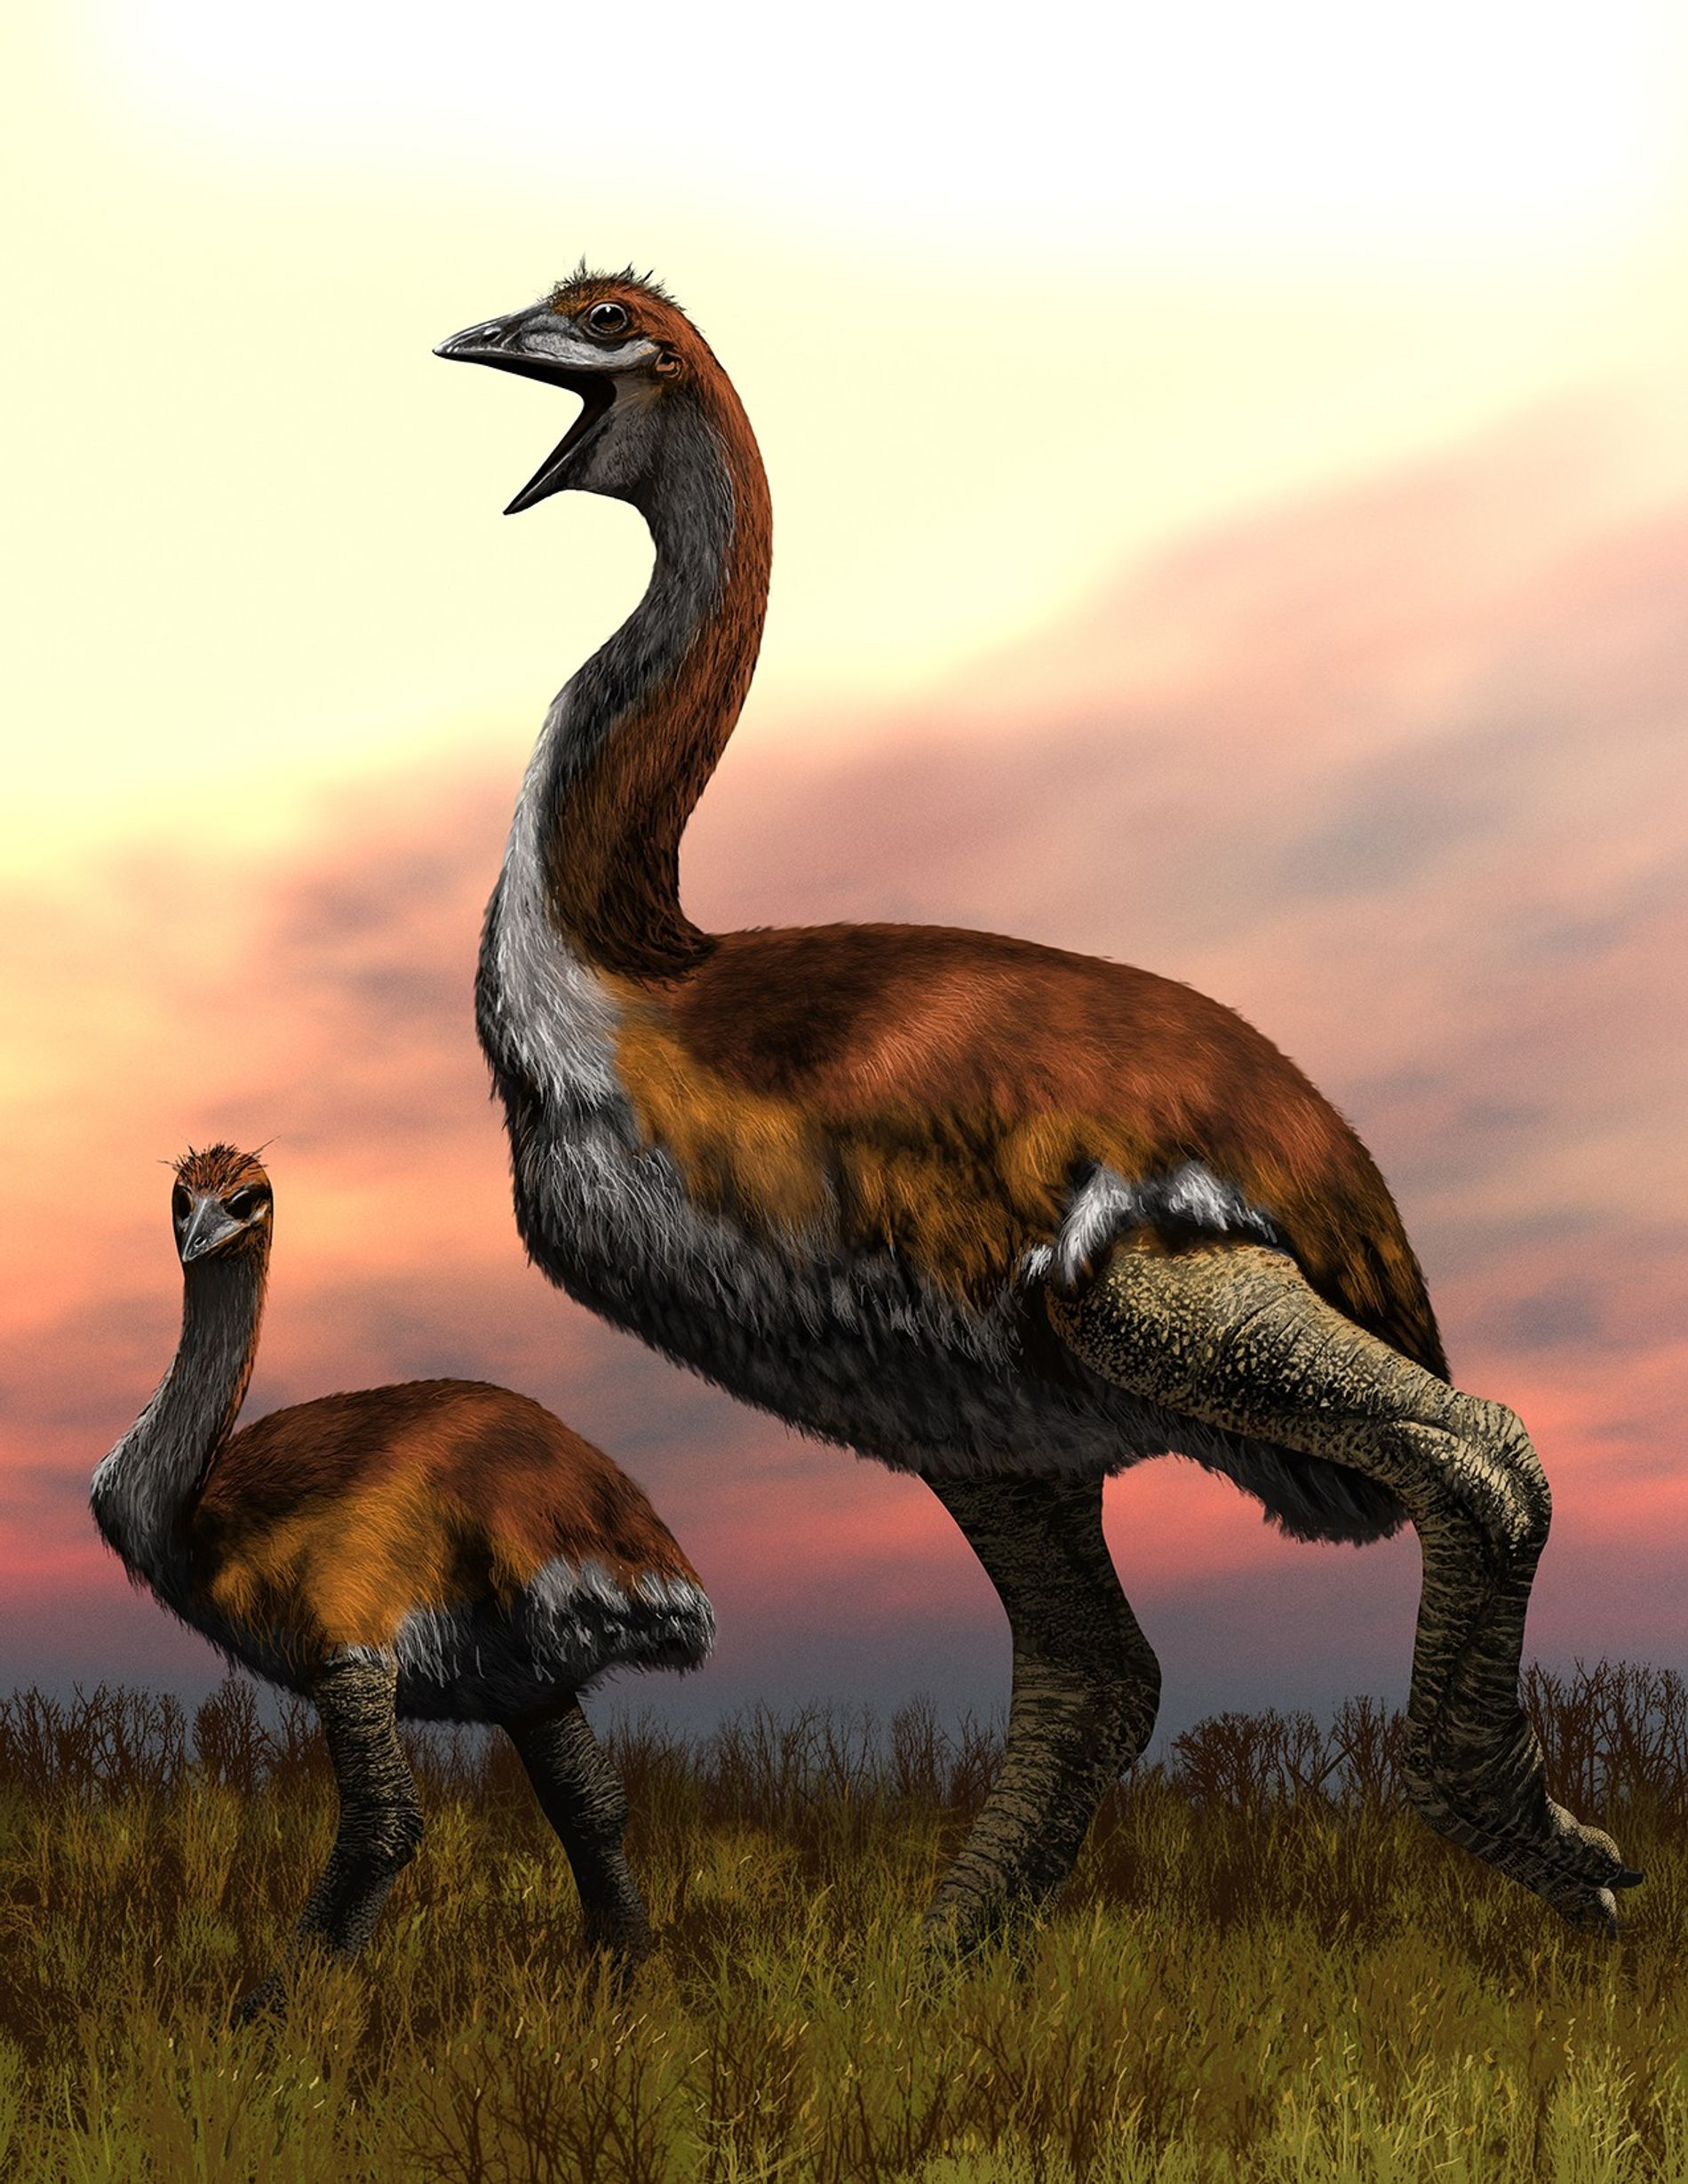 An artist's impression of the colossal elephant bird.